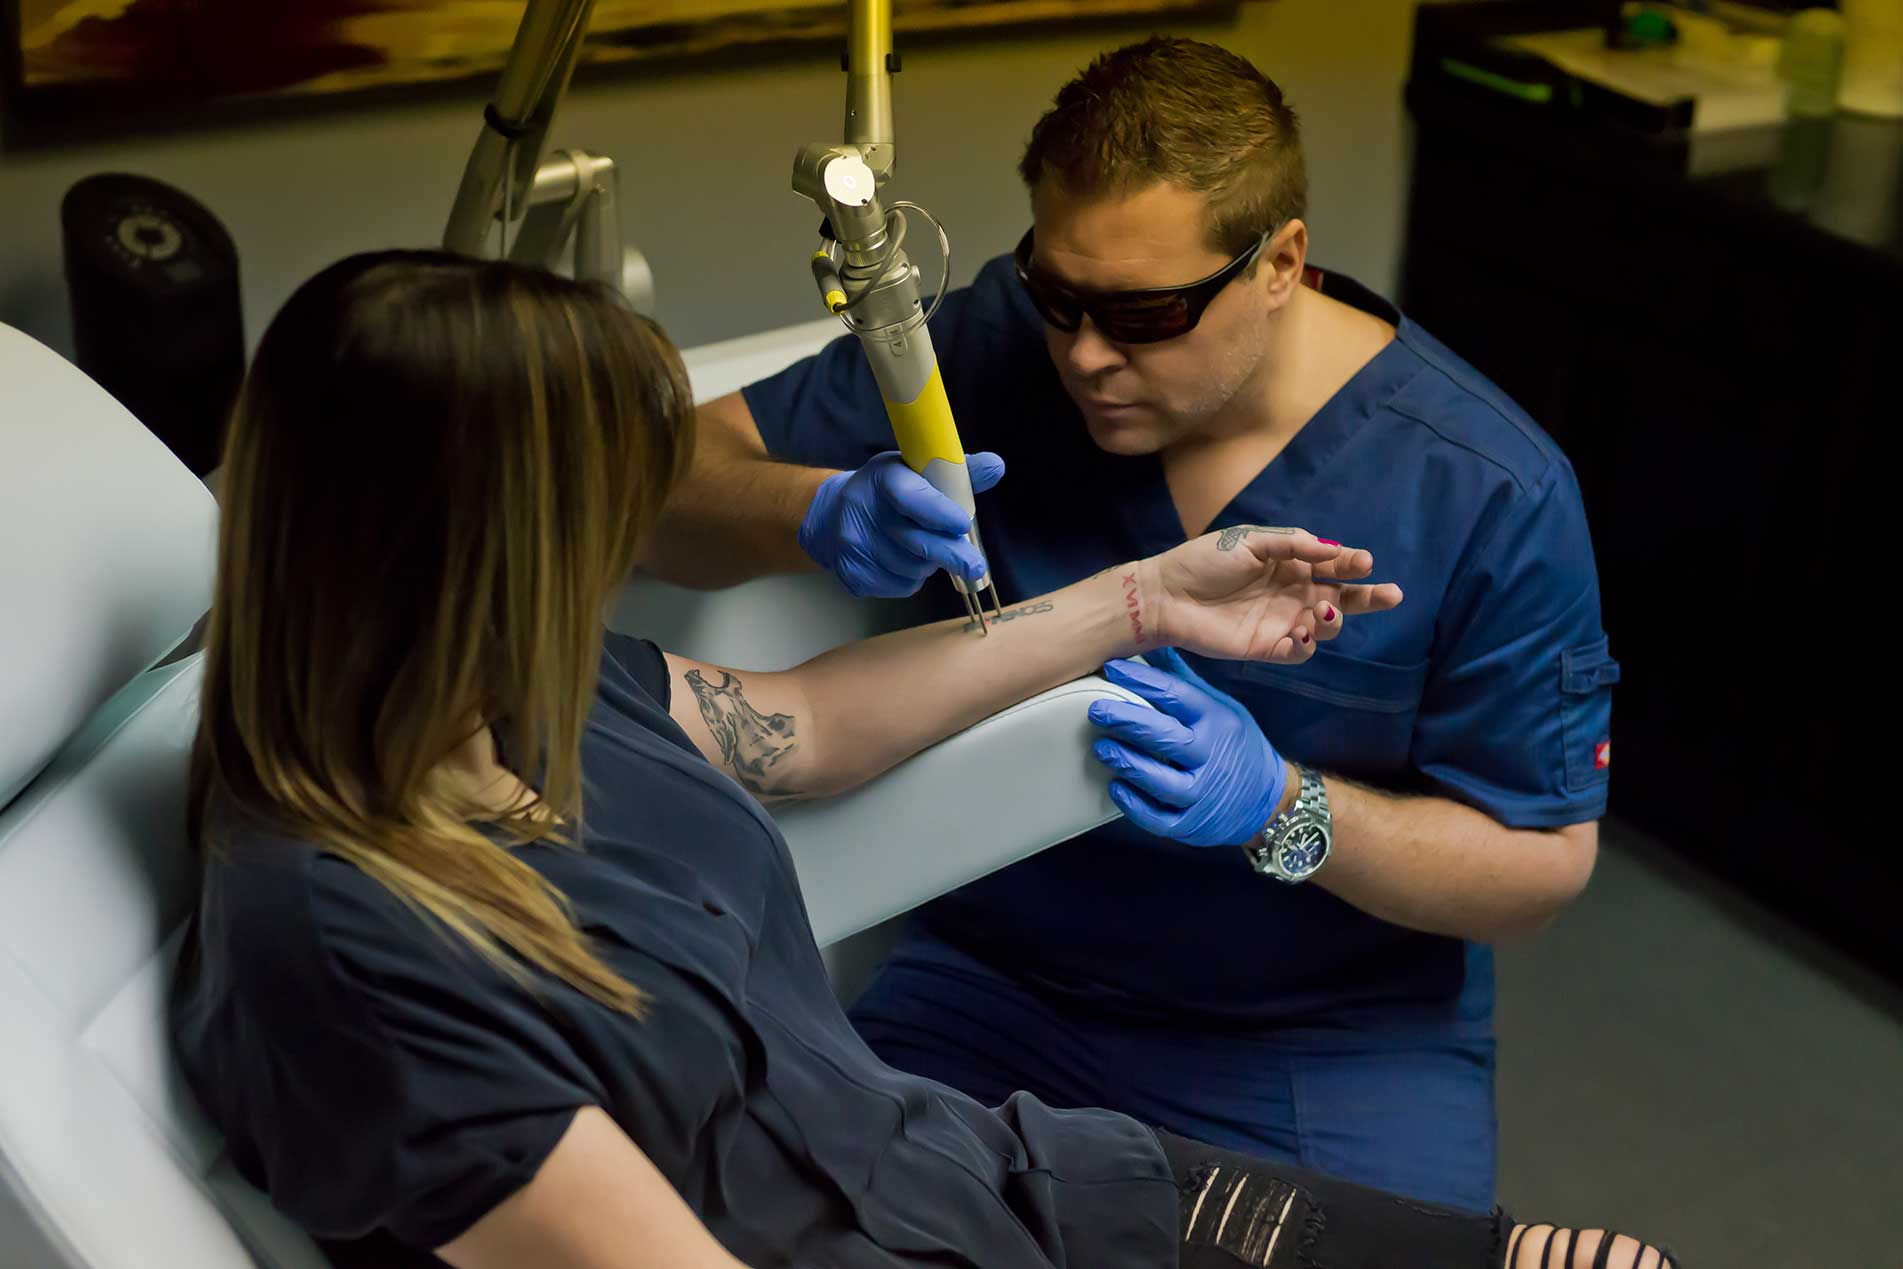 Februari 2017 tattoo removal options at home for Picosure tattoo removal michigan